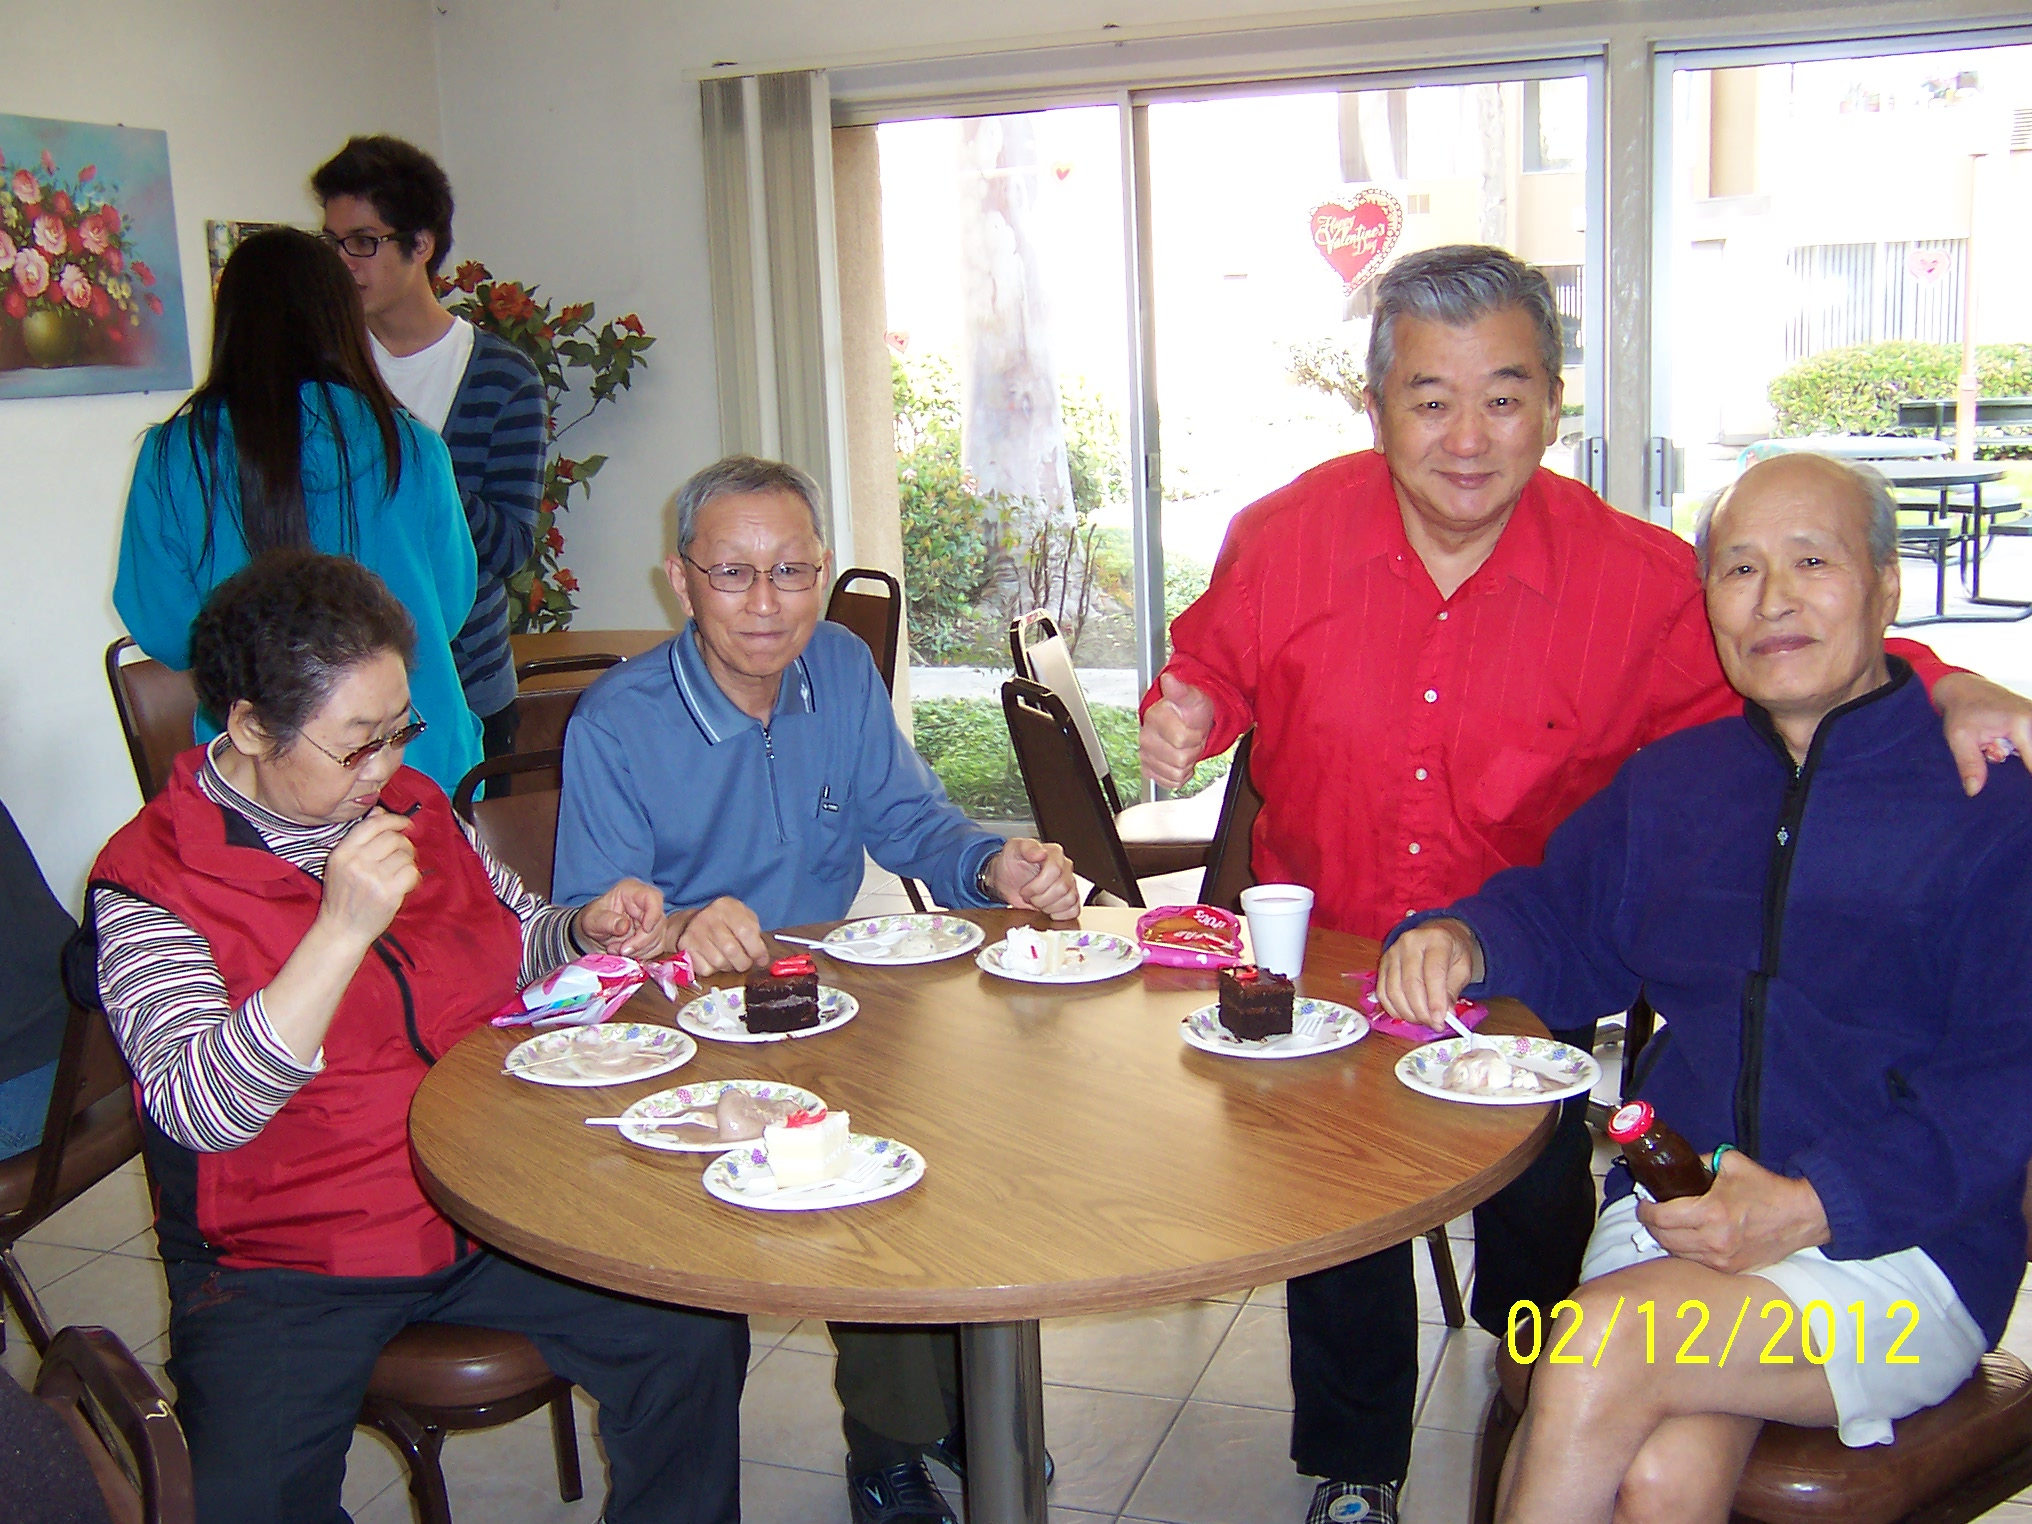 2012-02-12_WADY-Team-Party-for-Frail-Seniors_0042.JPG